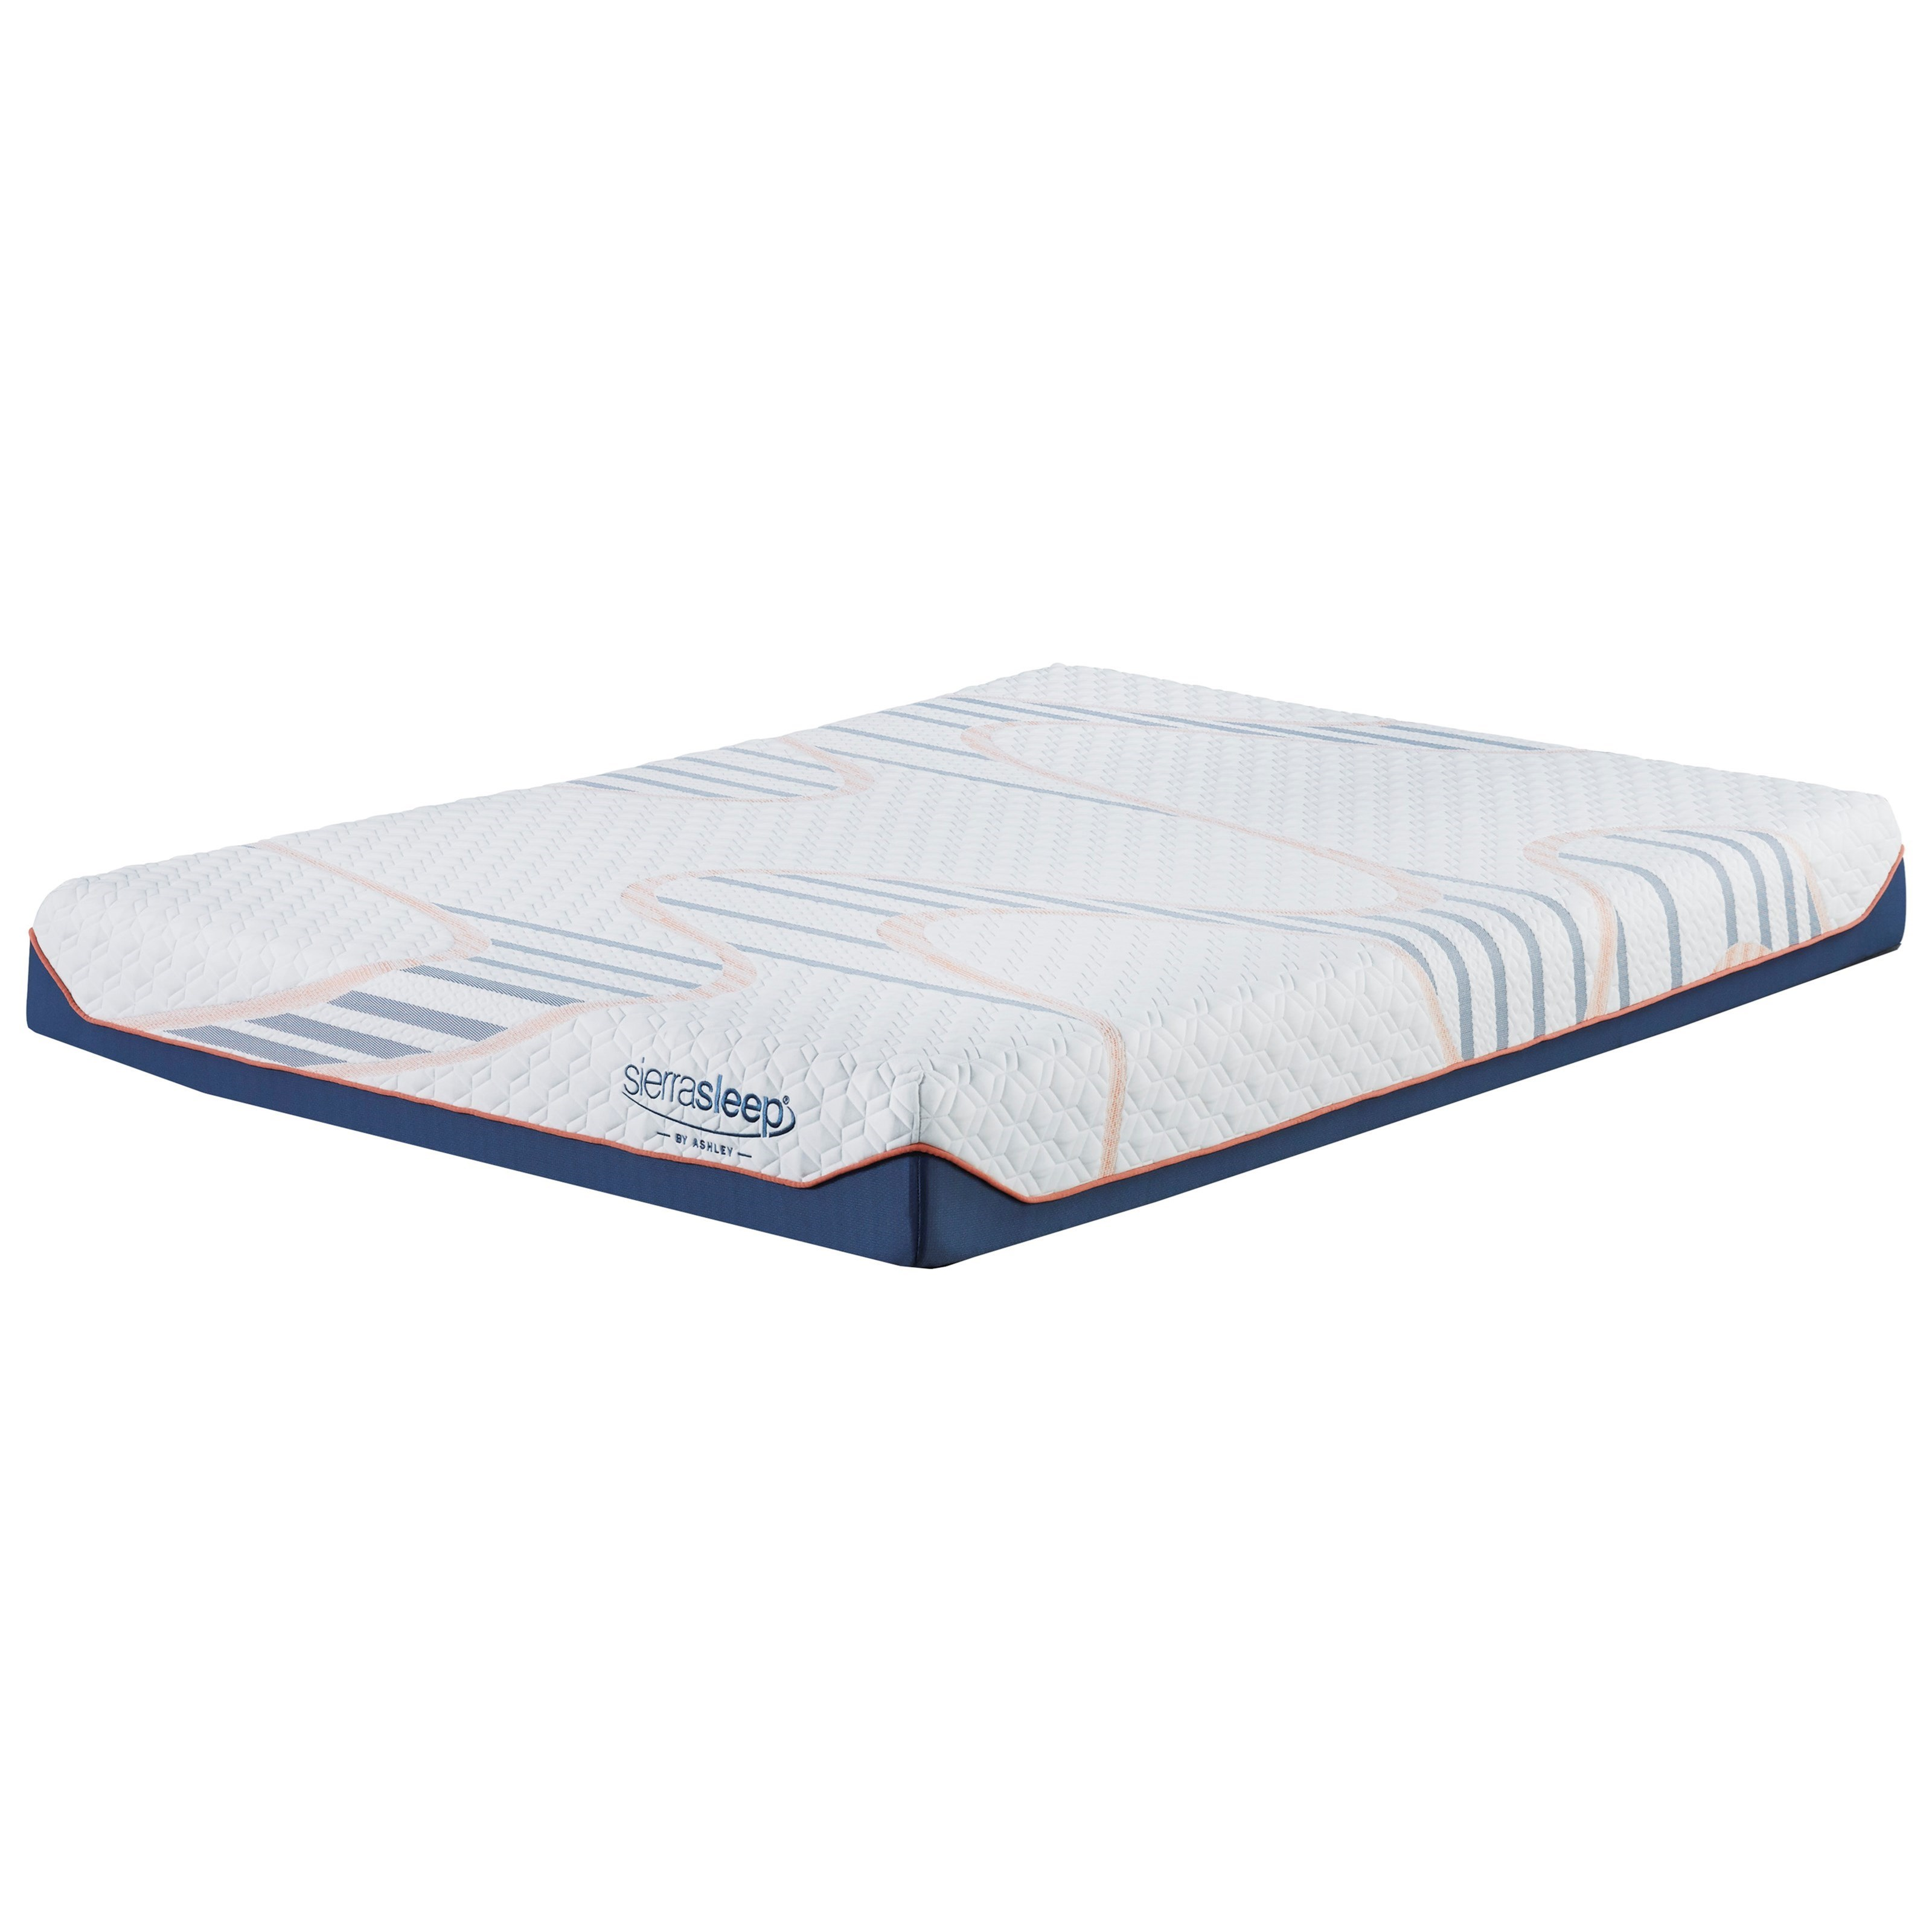 healthrest picture tempagel com suppliers restonic collection goodbed proud mattress reviews